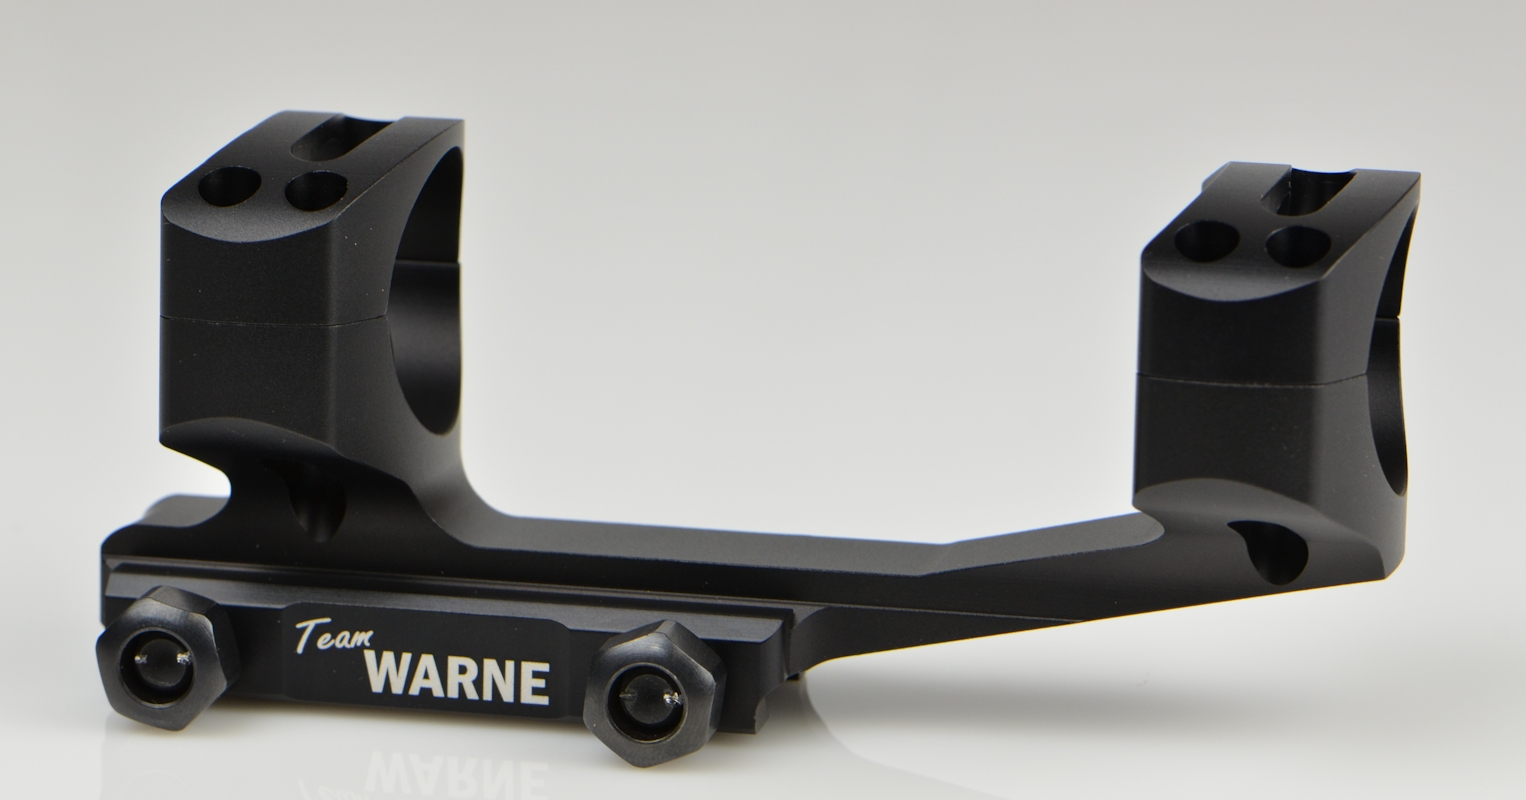 best scope mounts for ar 15 rifle reviews